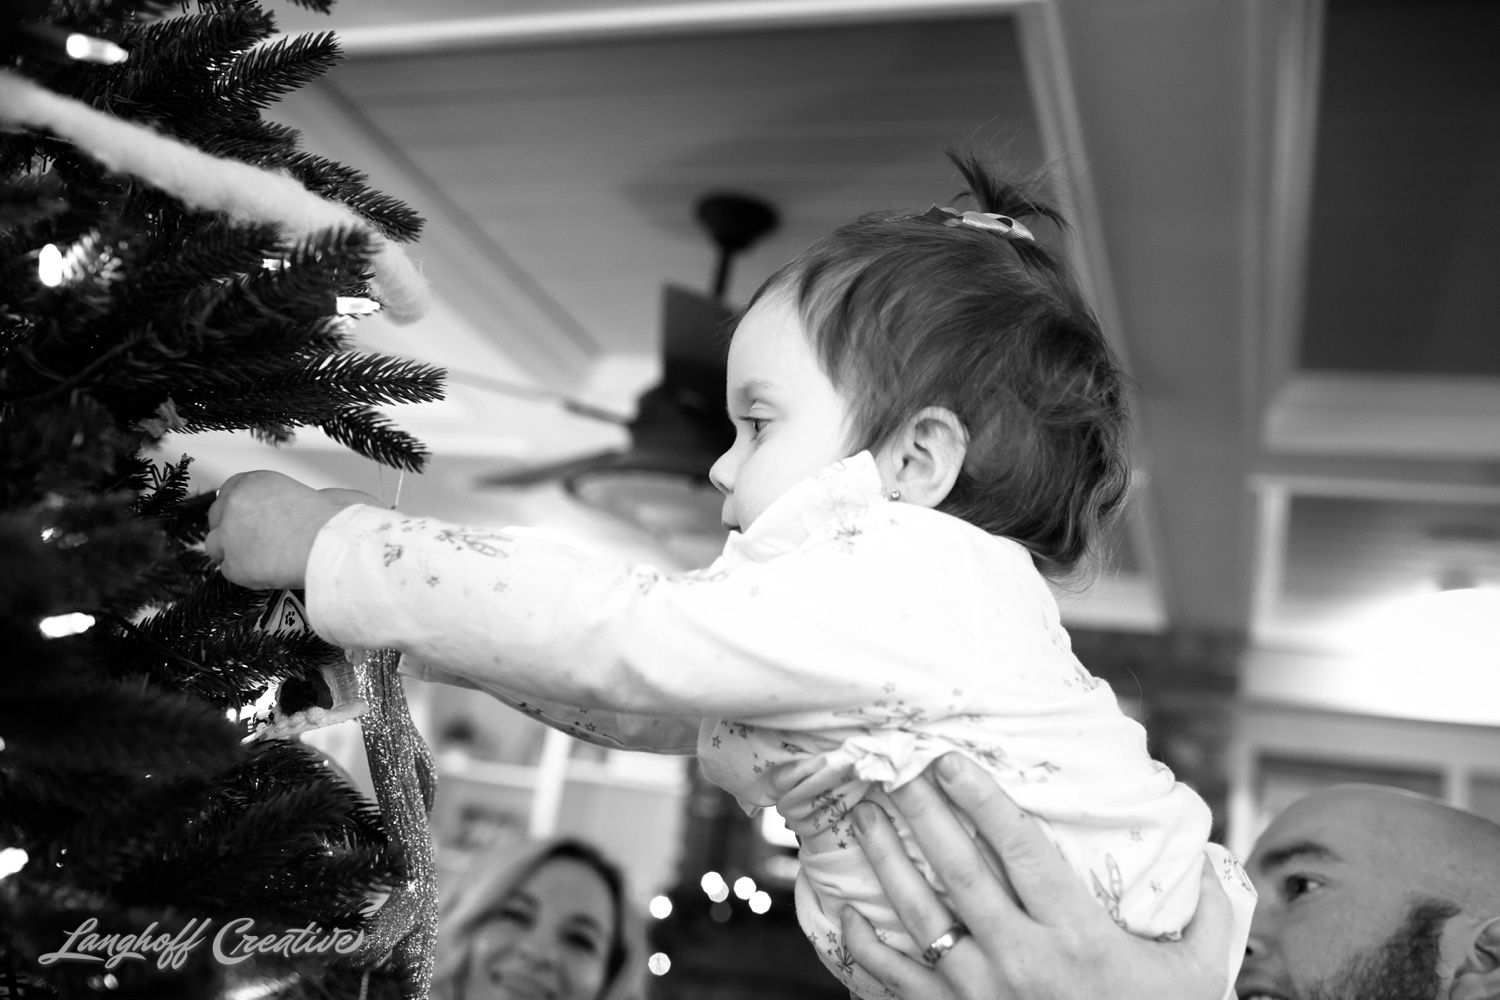 20171125-McGrathChristmas-DayInTheLife-Holidays-LanghoffCreative-RealLifeSession-DocumentaryFamilyPhotography-RDUphotographer-1-photo.jpg